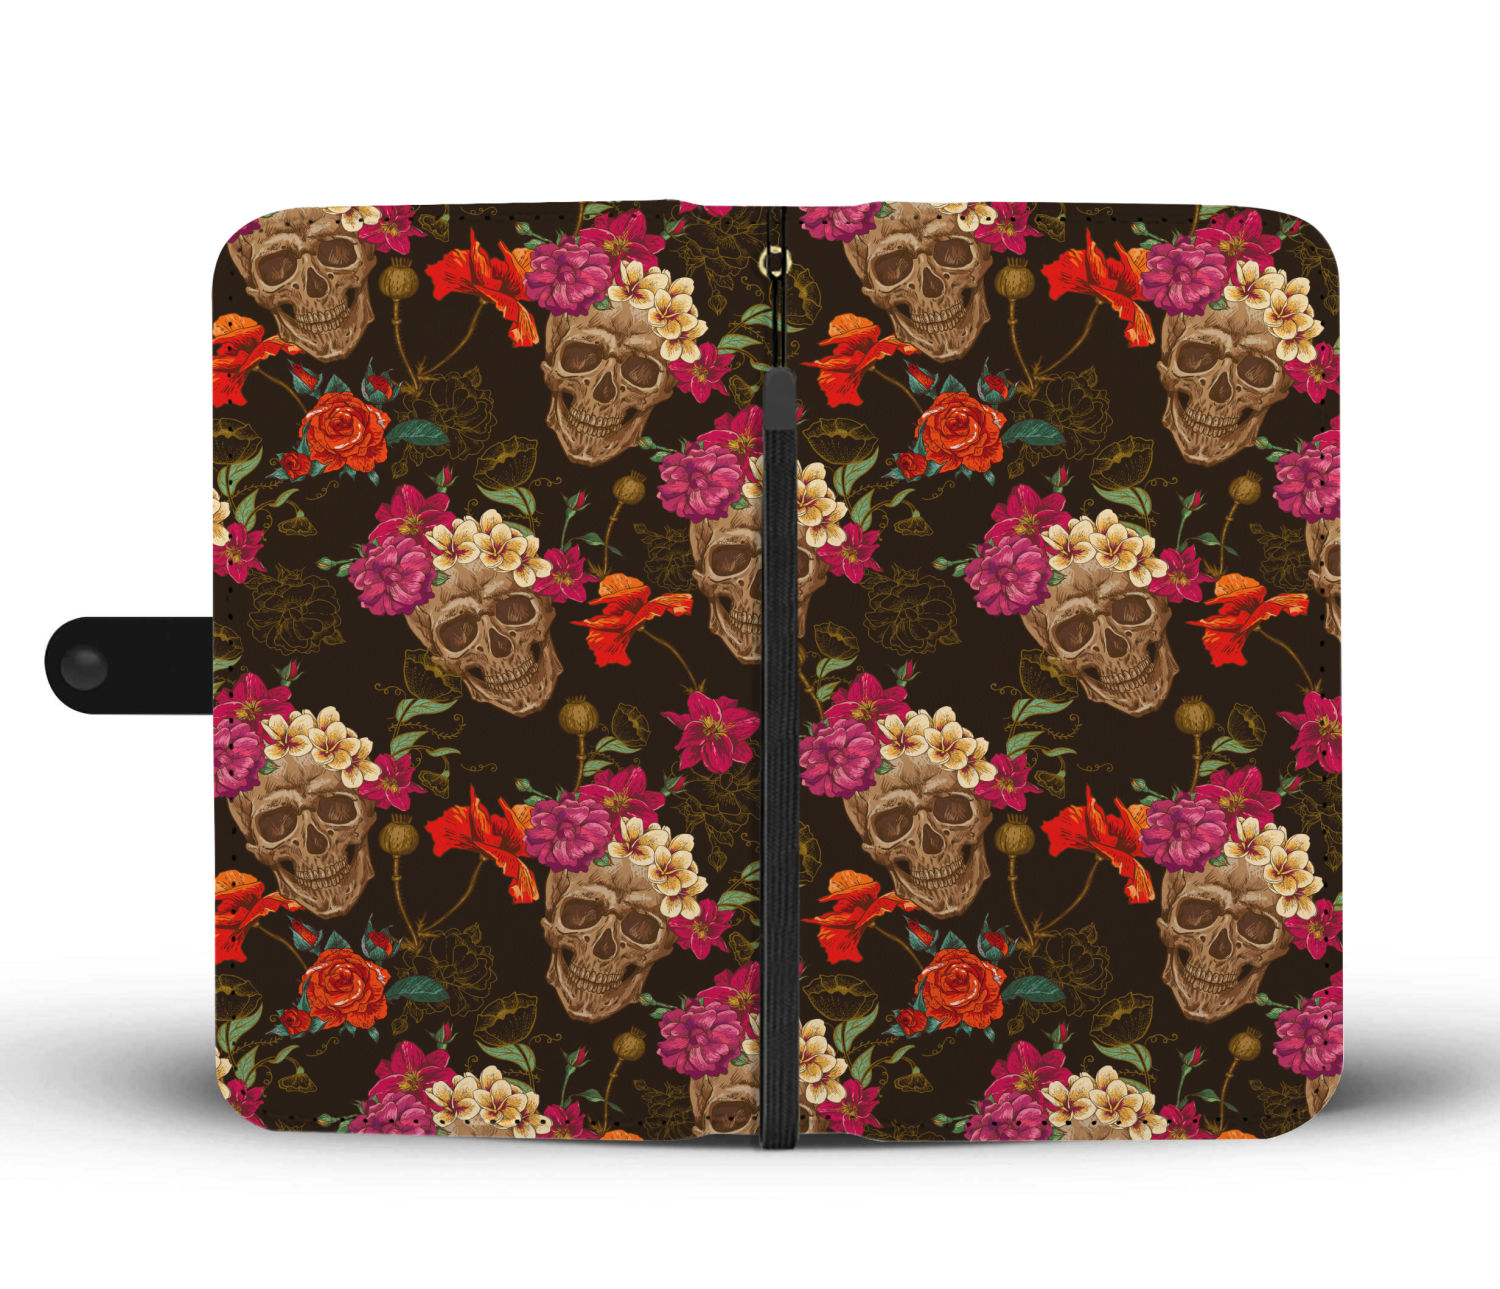 Skull Art Phone Wallet Case 04 - designfullprint